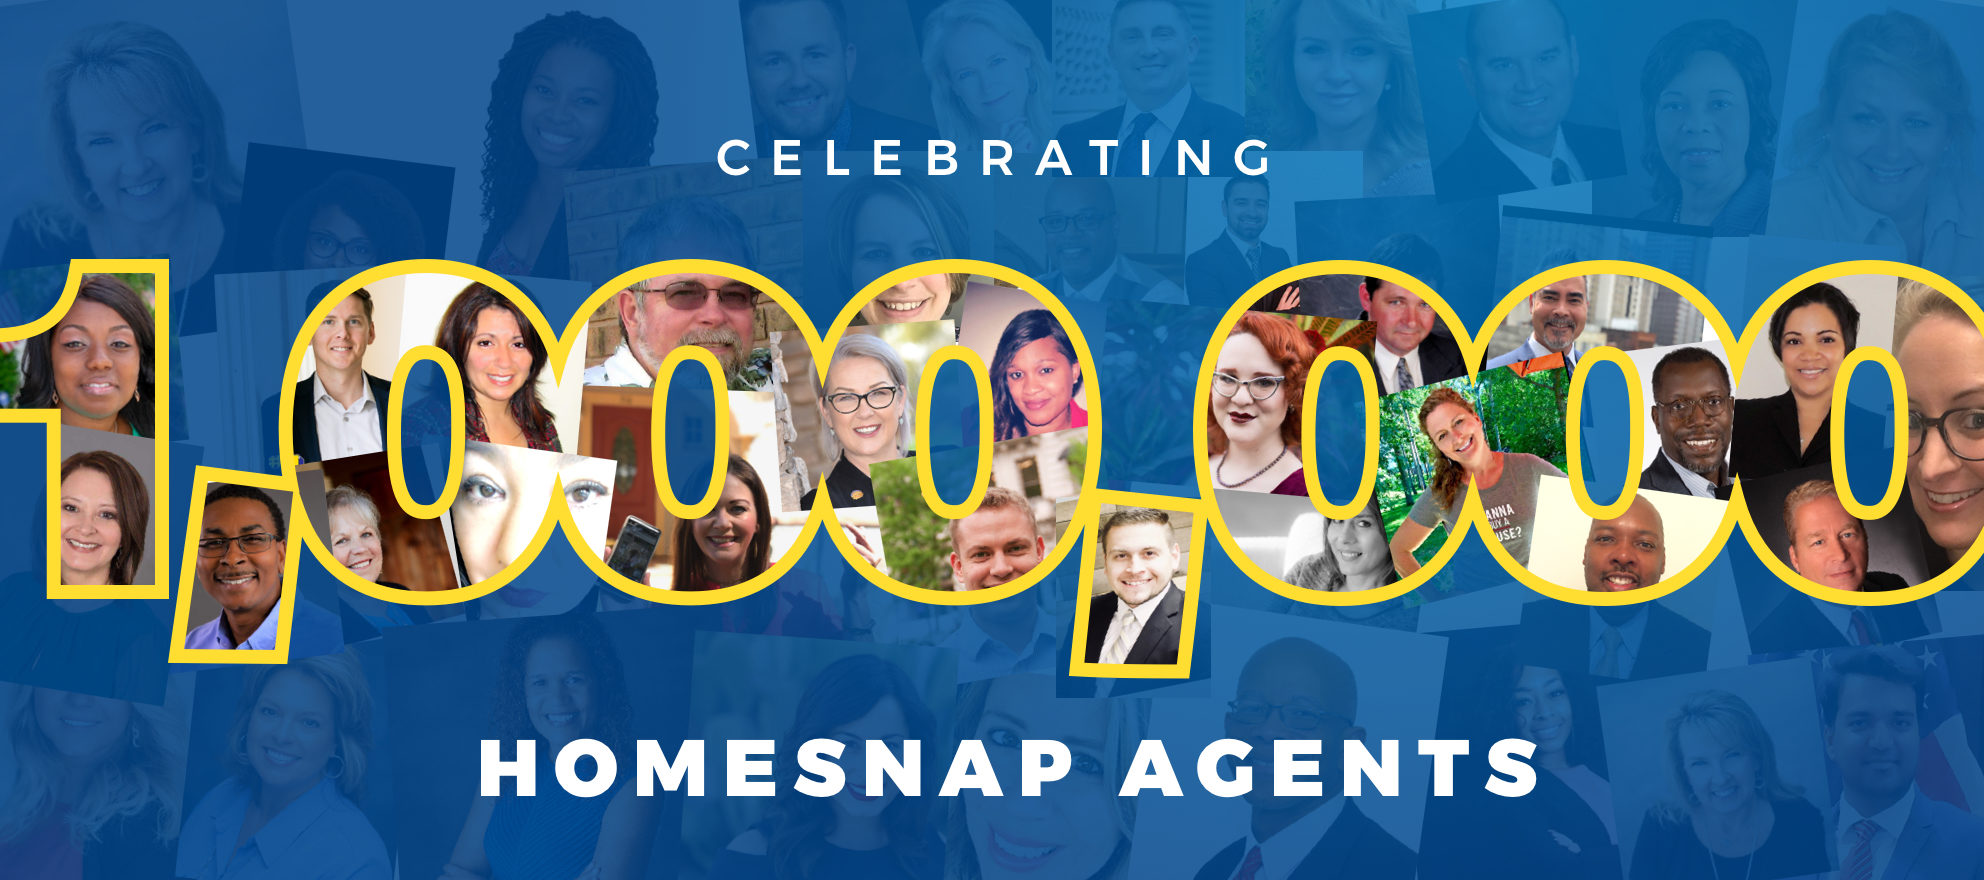 Homesnap Pro hits 5 years and 1 million agents